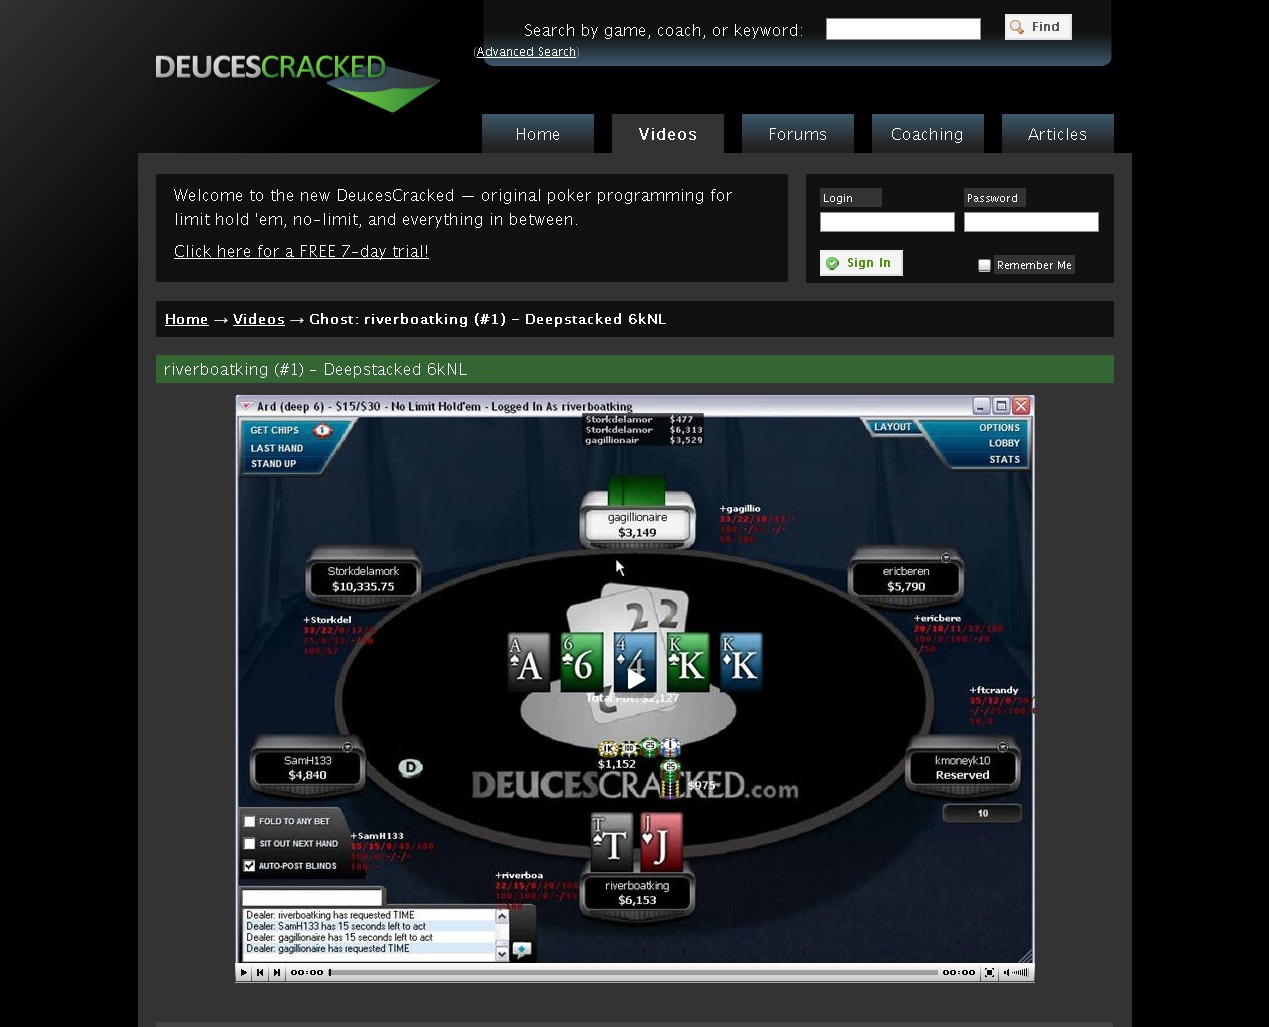 James Bond Casino Royale Watch Online, How To Play Poker For Kids, 5 Card Poker Online